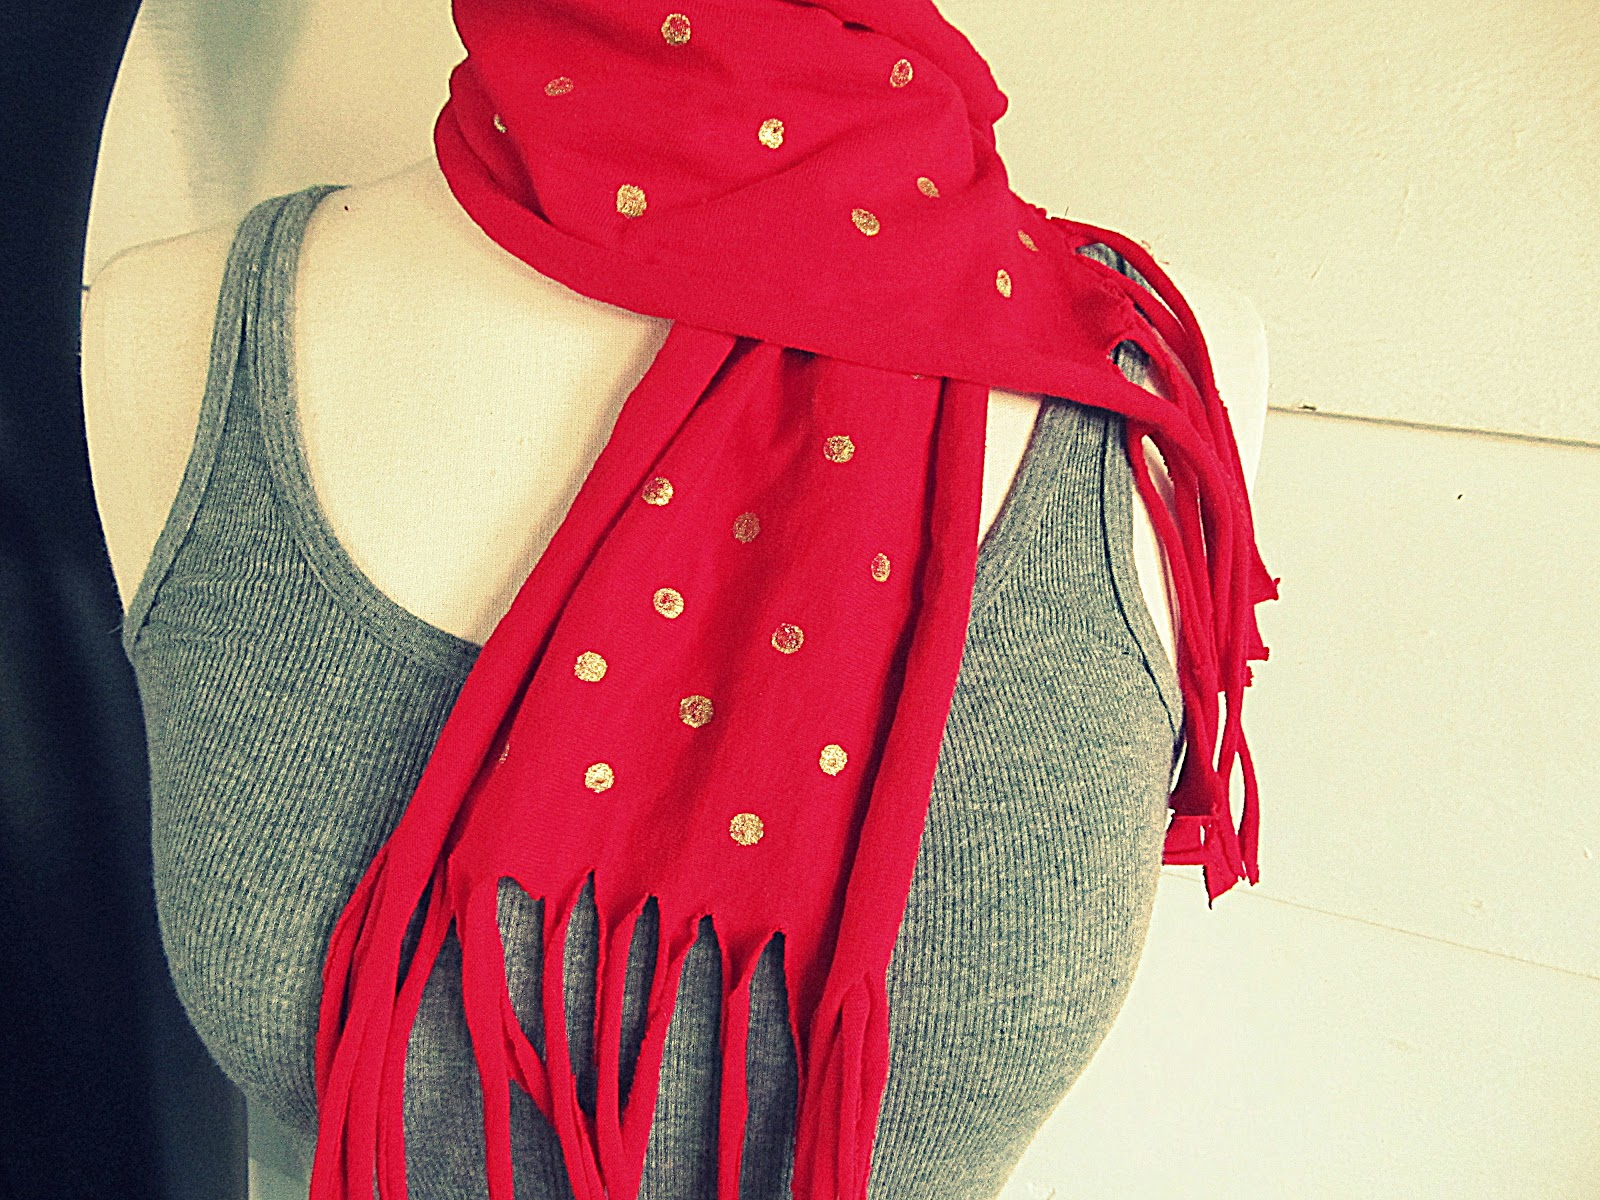 Make The Cut >> WobiSobi: Red T-shirt Scarf With Gold Polka Dots, DIY